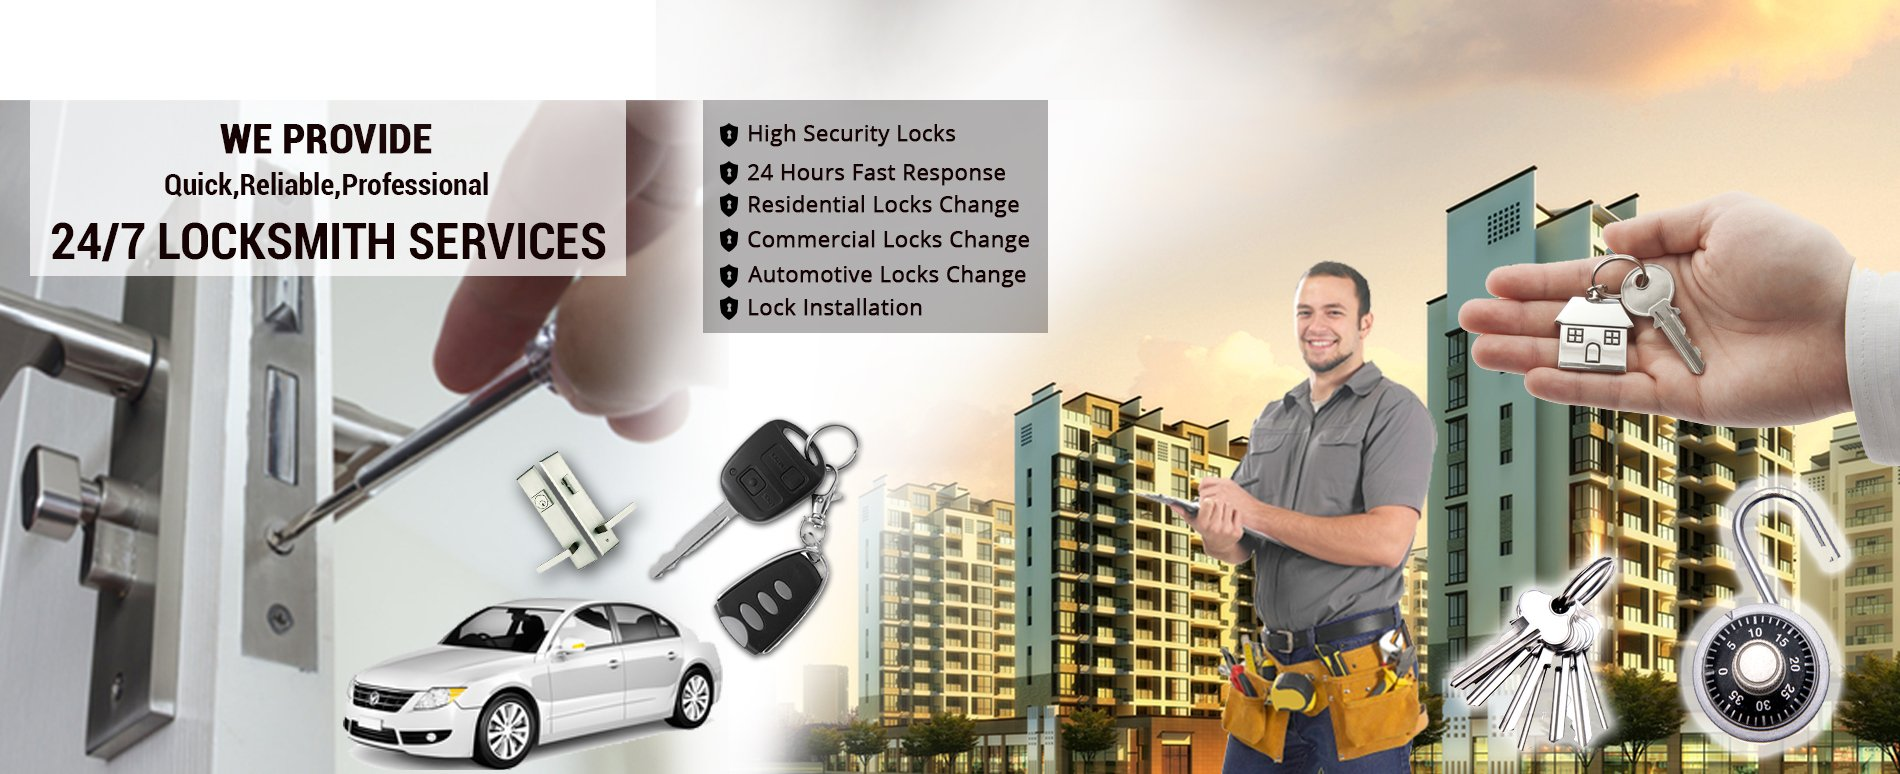 Little Village Locksmith Store San Jose, CA 408-876-6055